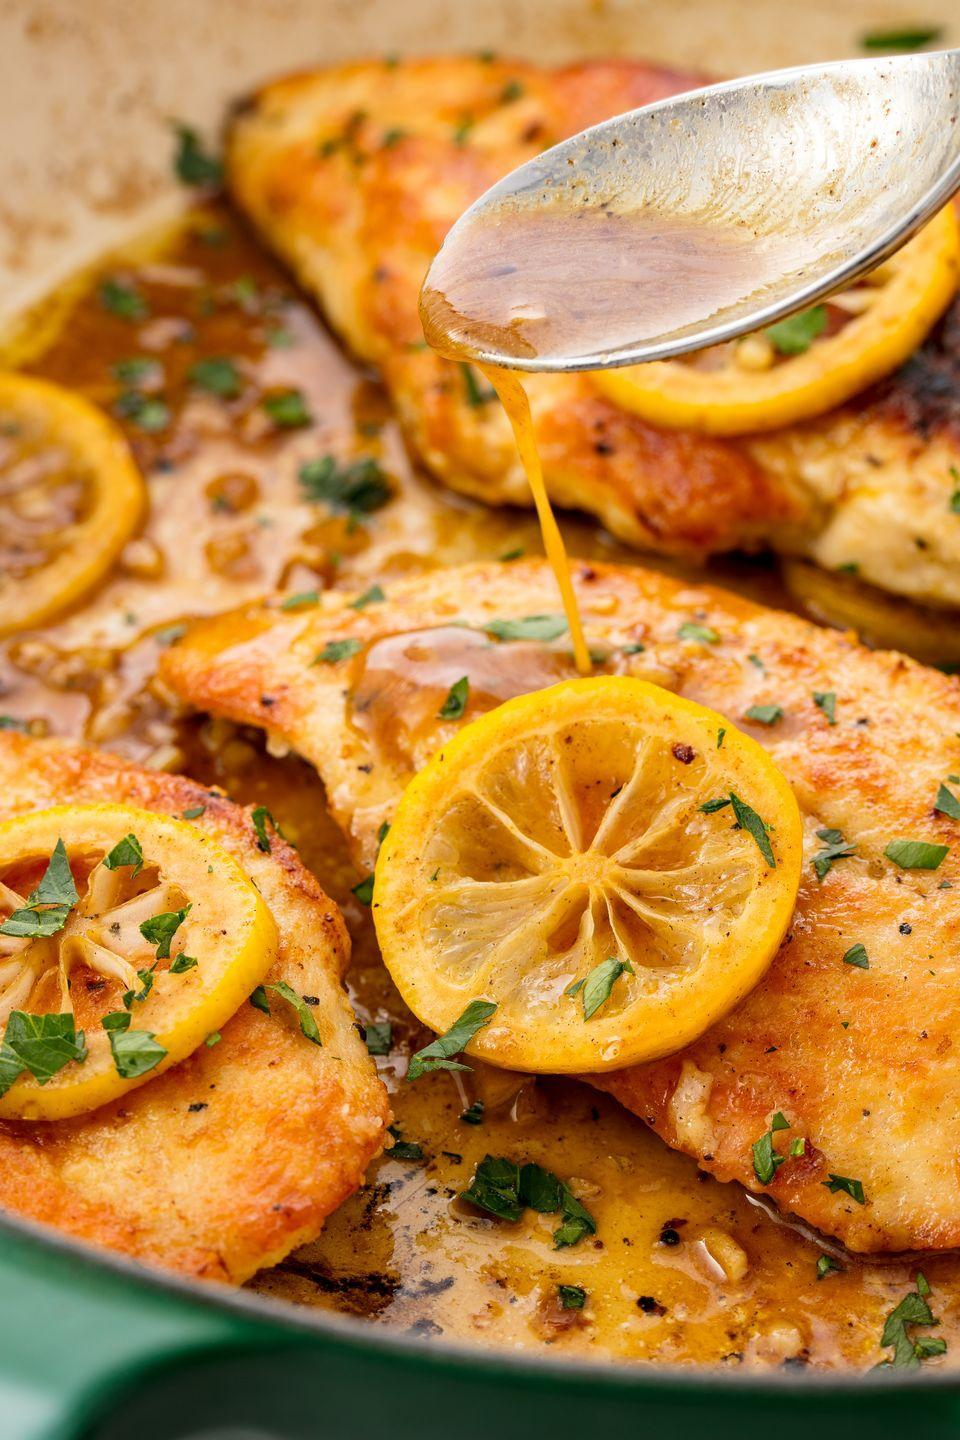 """<p>Lemon pepper makes <a href=""""https://www.delish.com/cooking/recipe-ideas/recipes/a51580/easy-baked-chicken-breast-recipe/"""" rel=""""nofollow noopener"""" target=""""_blank"""" data-ylk=""""slk:baked chicken"""" class=""""link rapid-noclick-resp"""">baked chicken</a> exciting again.</p><p>Get the recipe from <a href=""""https://www.delish.com/cooking/recipe-ideas/recipes/a55218/lemon-pepper-baked-chicken-breast-recipe/"""" rel=""""nofollow noopener"""" target=""""_blank"""" data-ylk=""""slk:Delish"""" class=""""link rapid-noclick-resp"""">Delish</a>.</p>"""